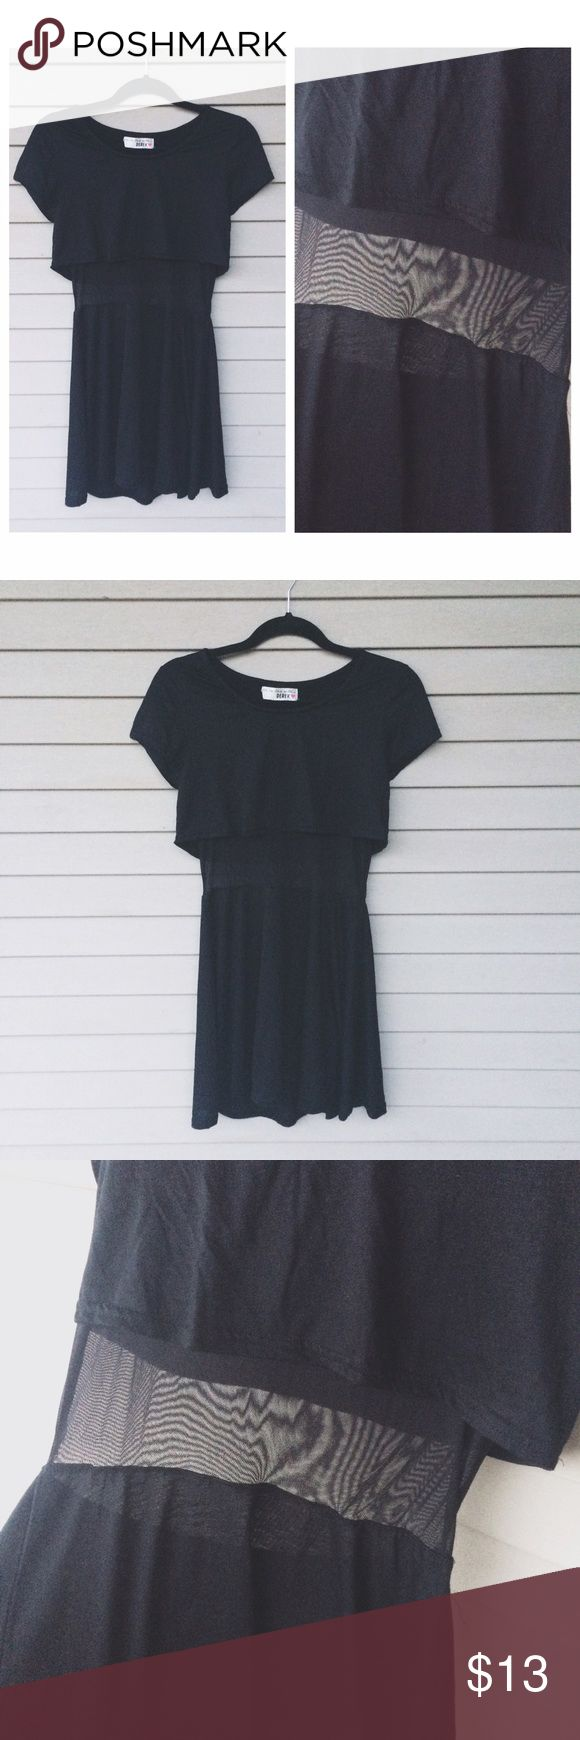 "Short Sleeve Black Mesh Dress, sz M Short-sleeve skater dress by I'm In Love With Derek (?? LOL) in sz M. There's a mesh underlay in the middle to show a peek of skin, which definitely sets this apart from your regular LBD 👌🏻 The overlaying ""crop top"" part is about 12"" in length, so would recommend for an A or B cup to avoid potential underboob! Pic 3 is from SheIn and shows similar style.  --- Measurements: bust stretches to fit approx 26""-35"" around; top half (""crop top"" area"") is 12"" in…"